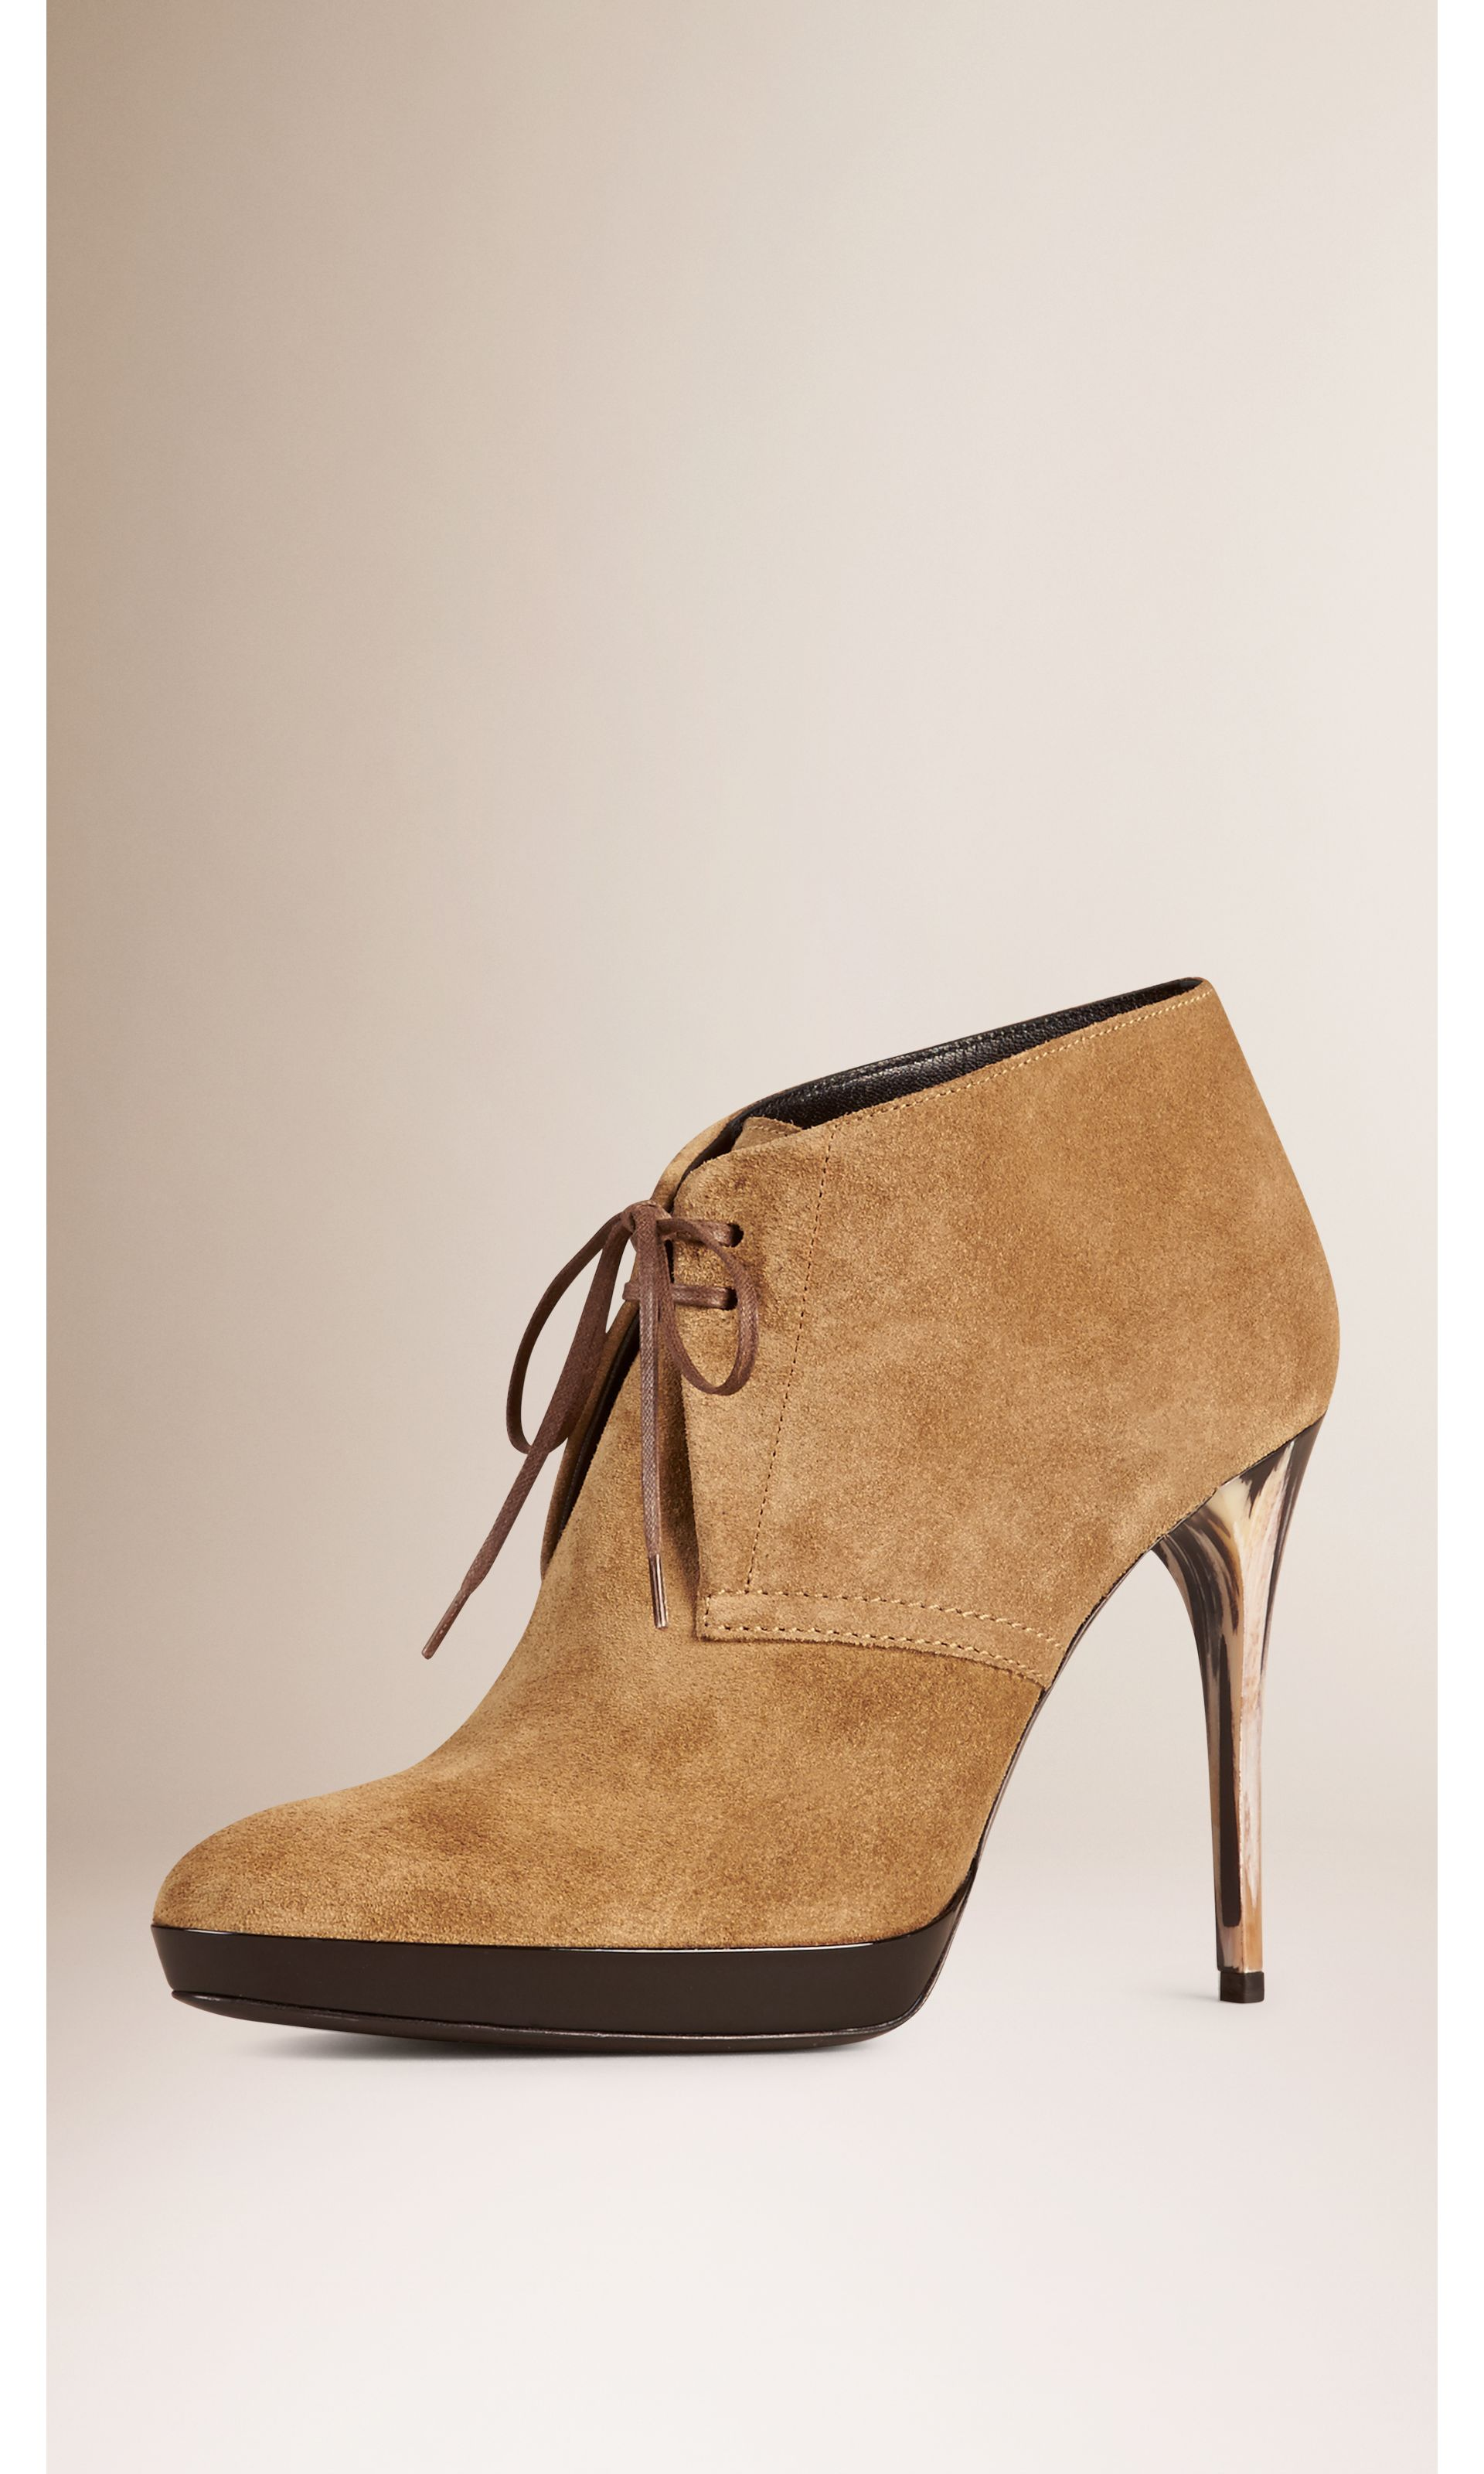 Lace-up Suede Ankle Boots in Sandstone - Women   Burberry United States - gallery image 0